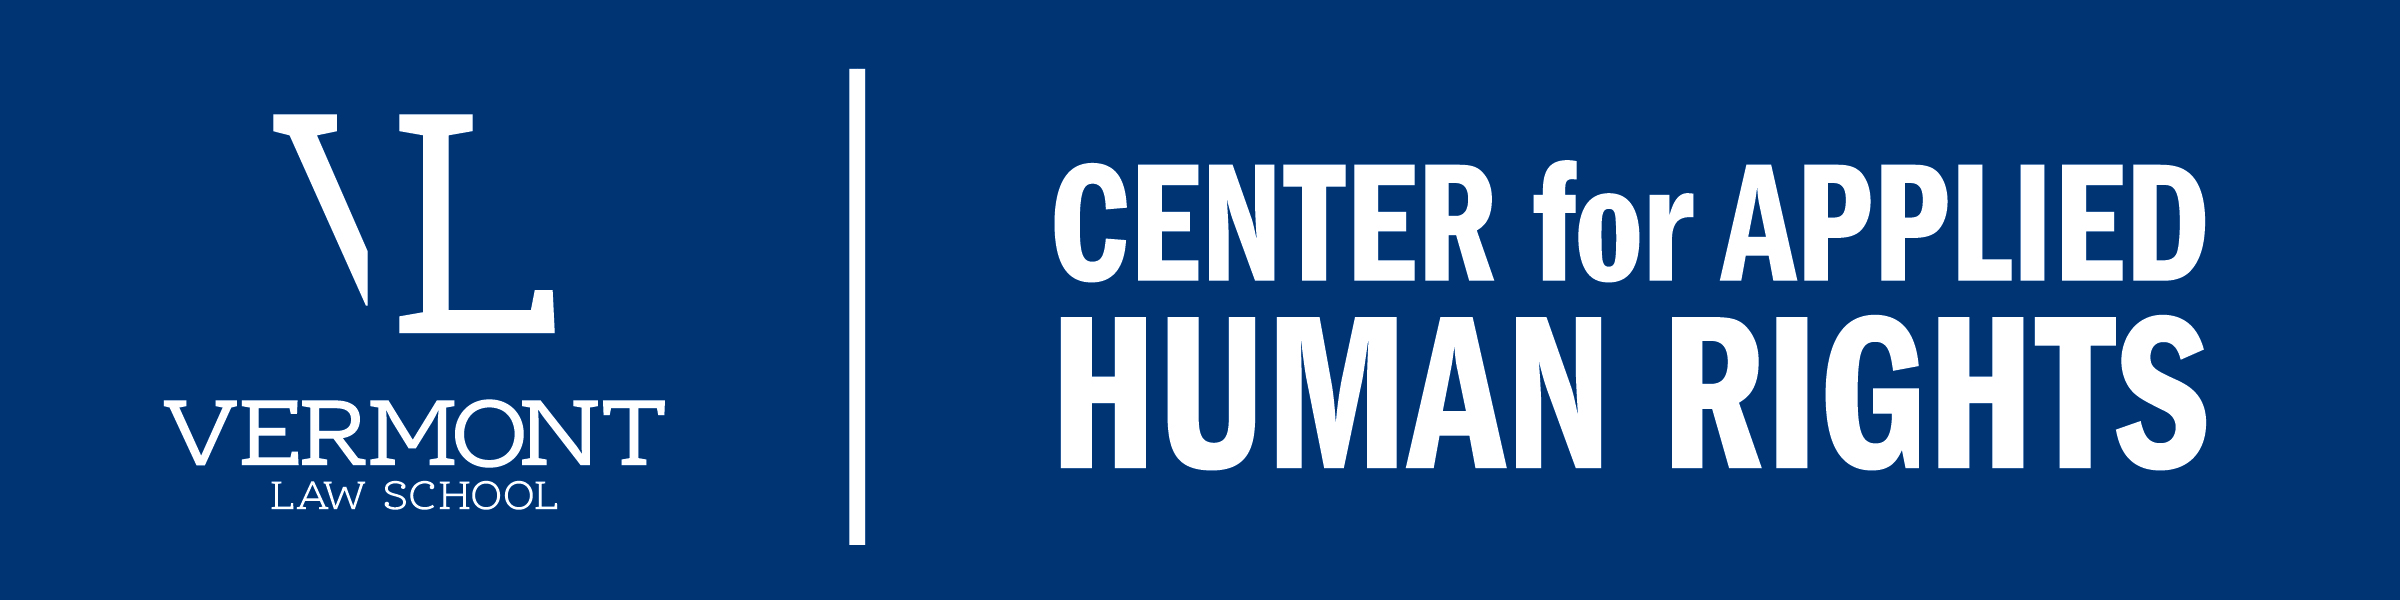 Center for Applied Human Rights